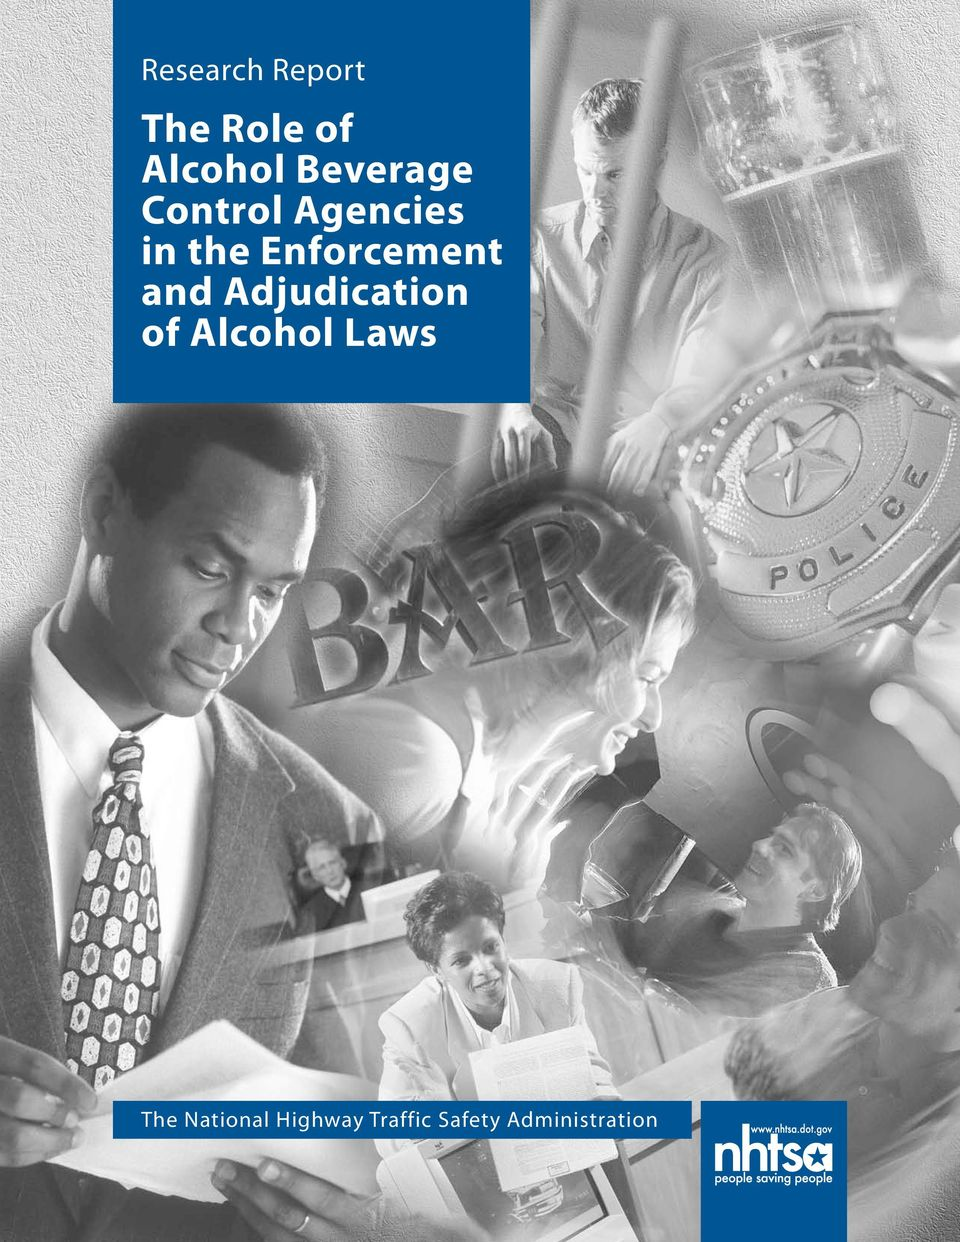 Enforcement and Adjudication of Alcohol